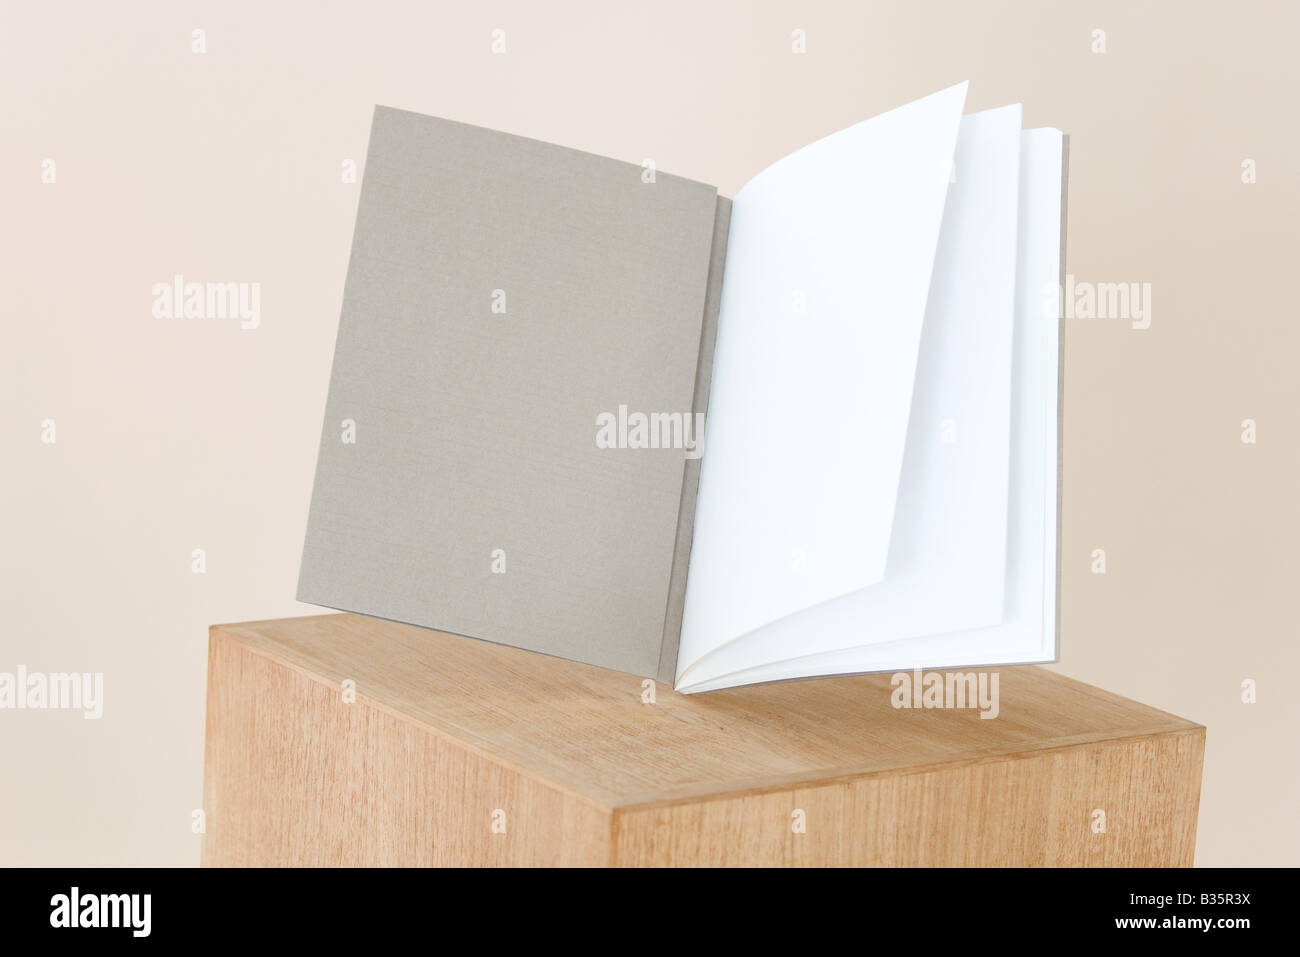 Open book balancing on pedestal, blank pages, close-up - Stock Image